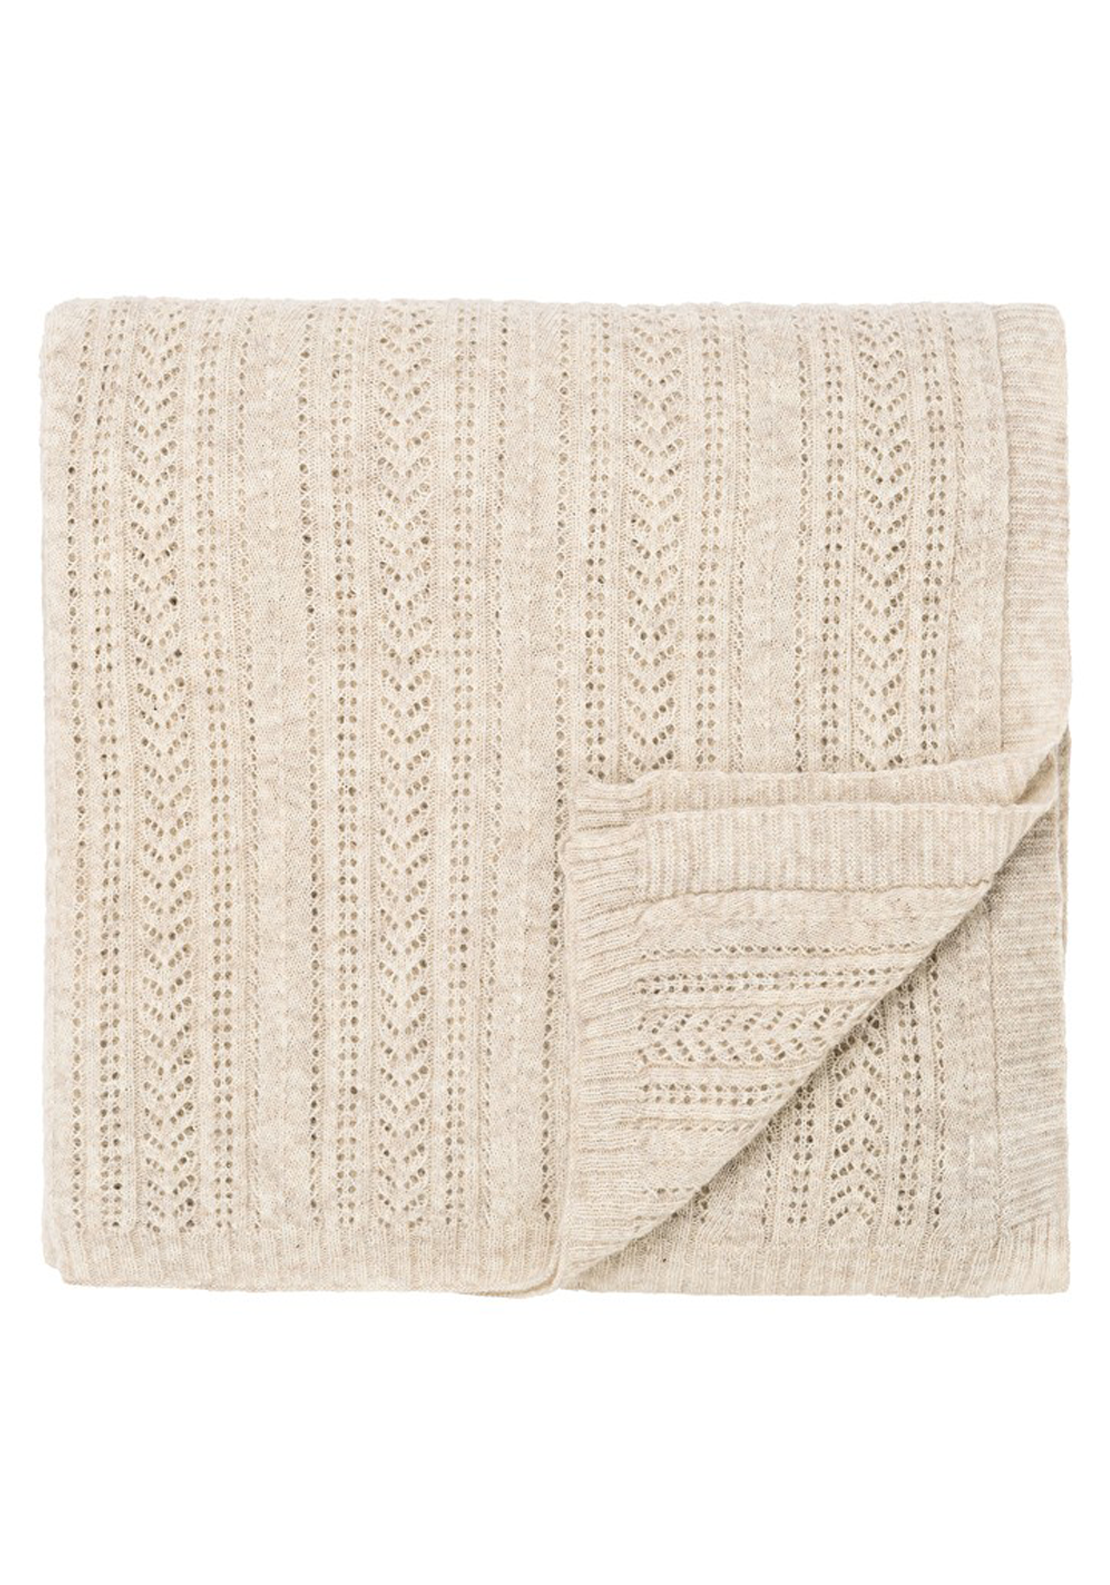 Fable Aura Knitted Throw, 140 x 200cm Linen